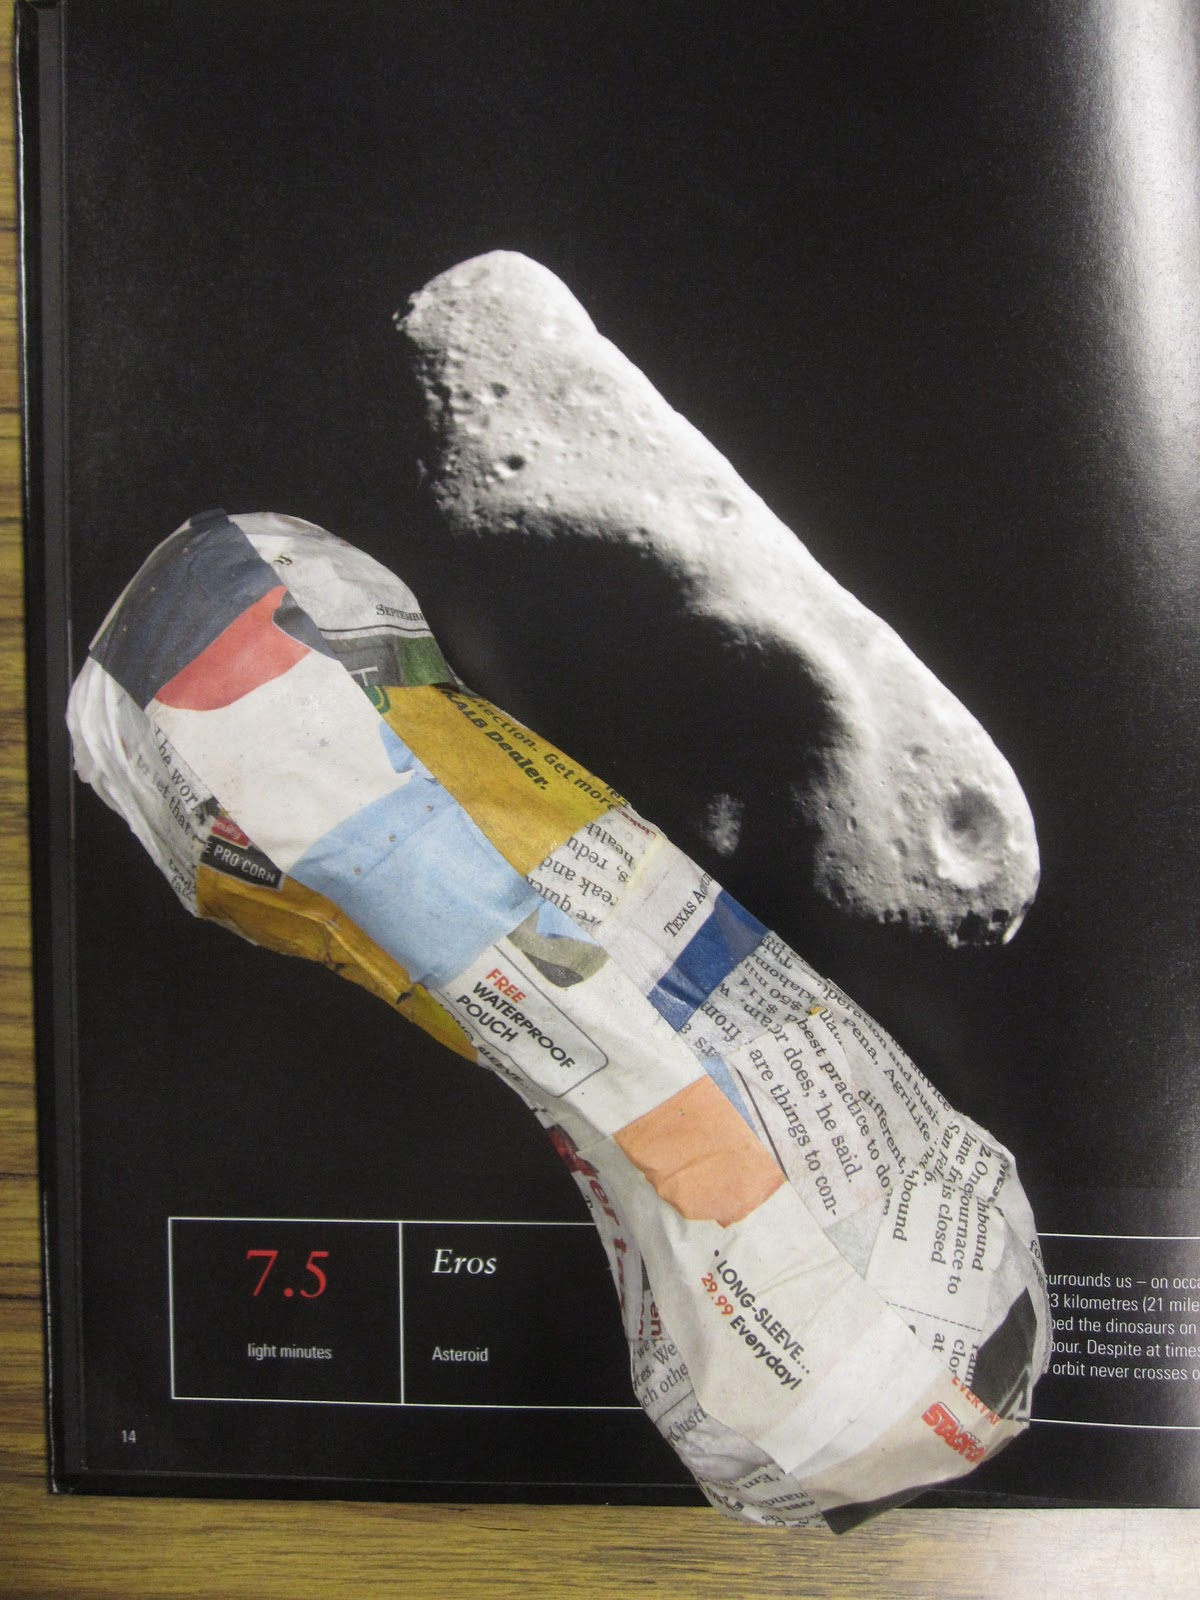 The GT Classroom: PAPER MACHE' PLANETS and ASTEROIDS PROJECT